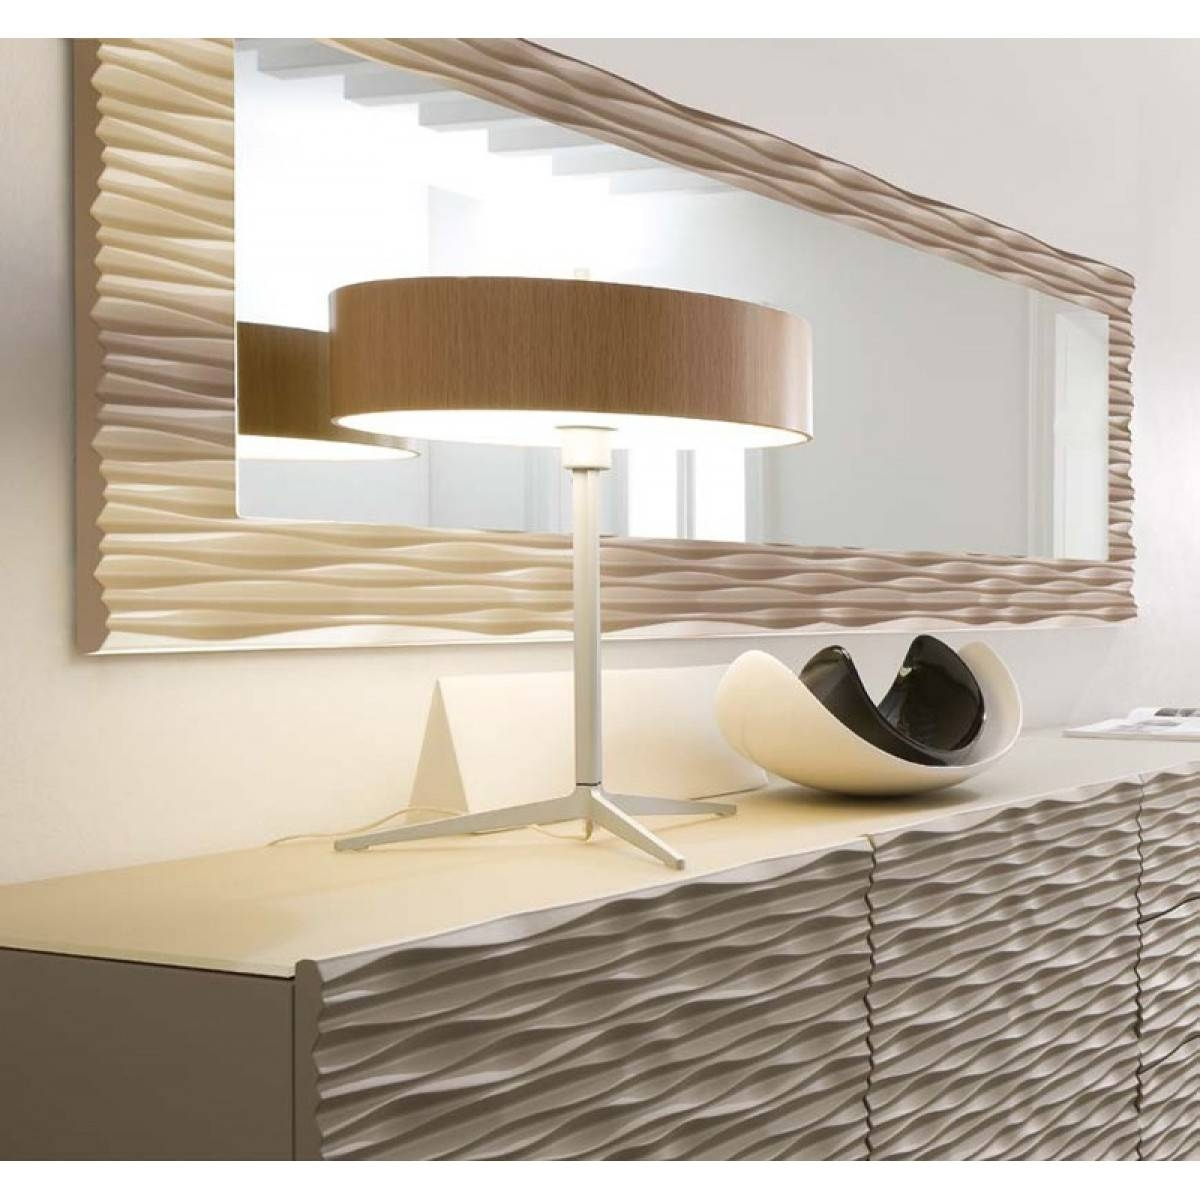 Large Wall Mirrors Tips To Place The Mirror In The Right Style And with Massive Wall Mirrors (Image 16 of 25)